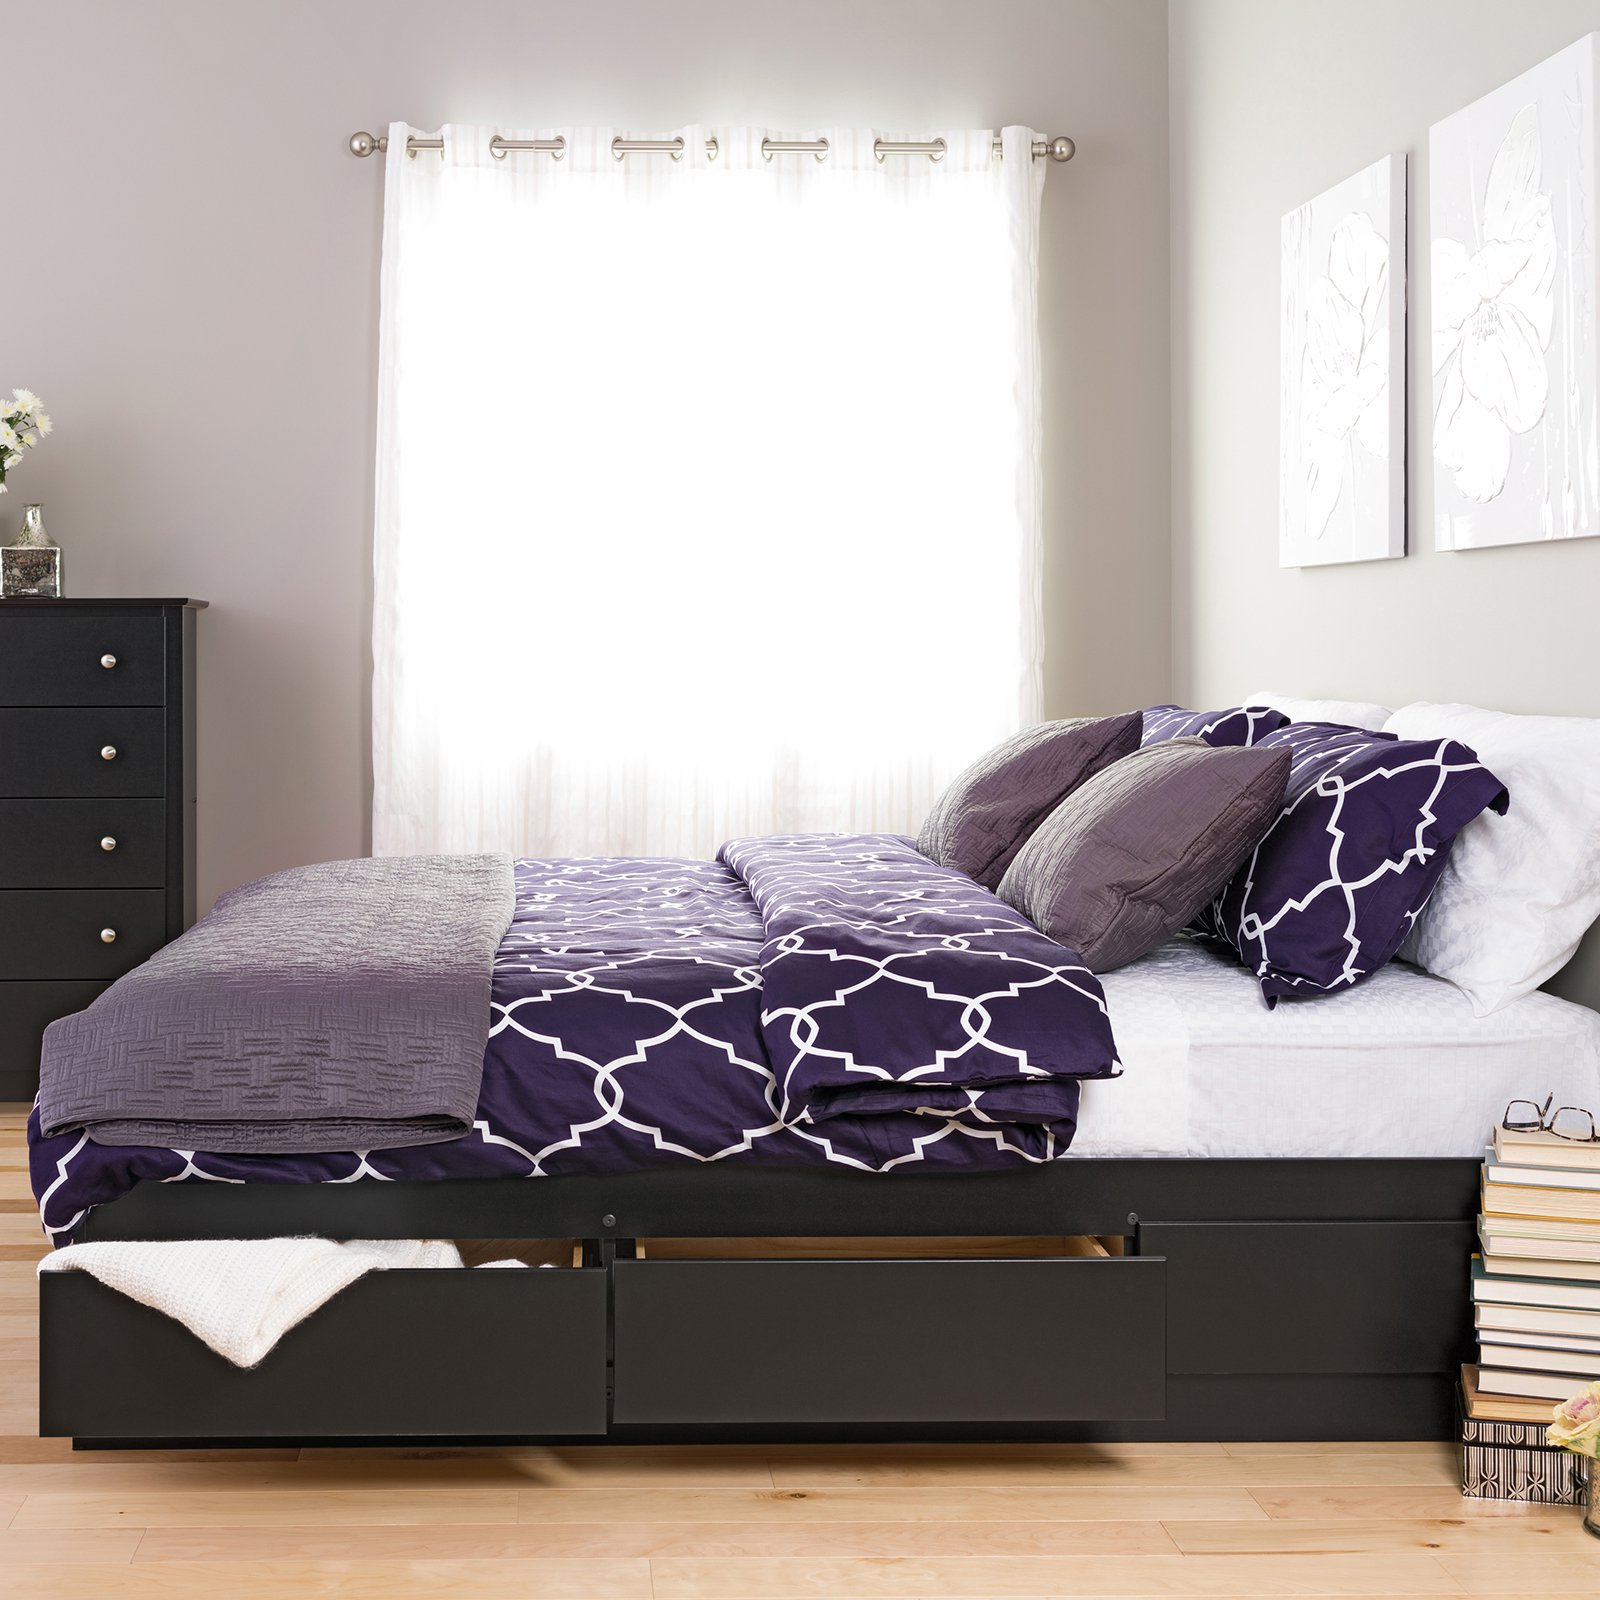 Image of: DIY Platform Bed with Storage Size